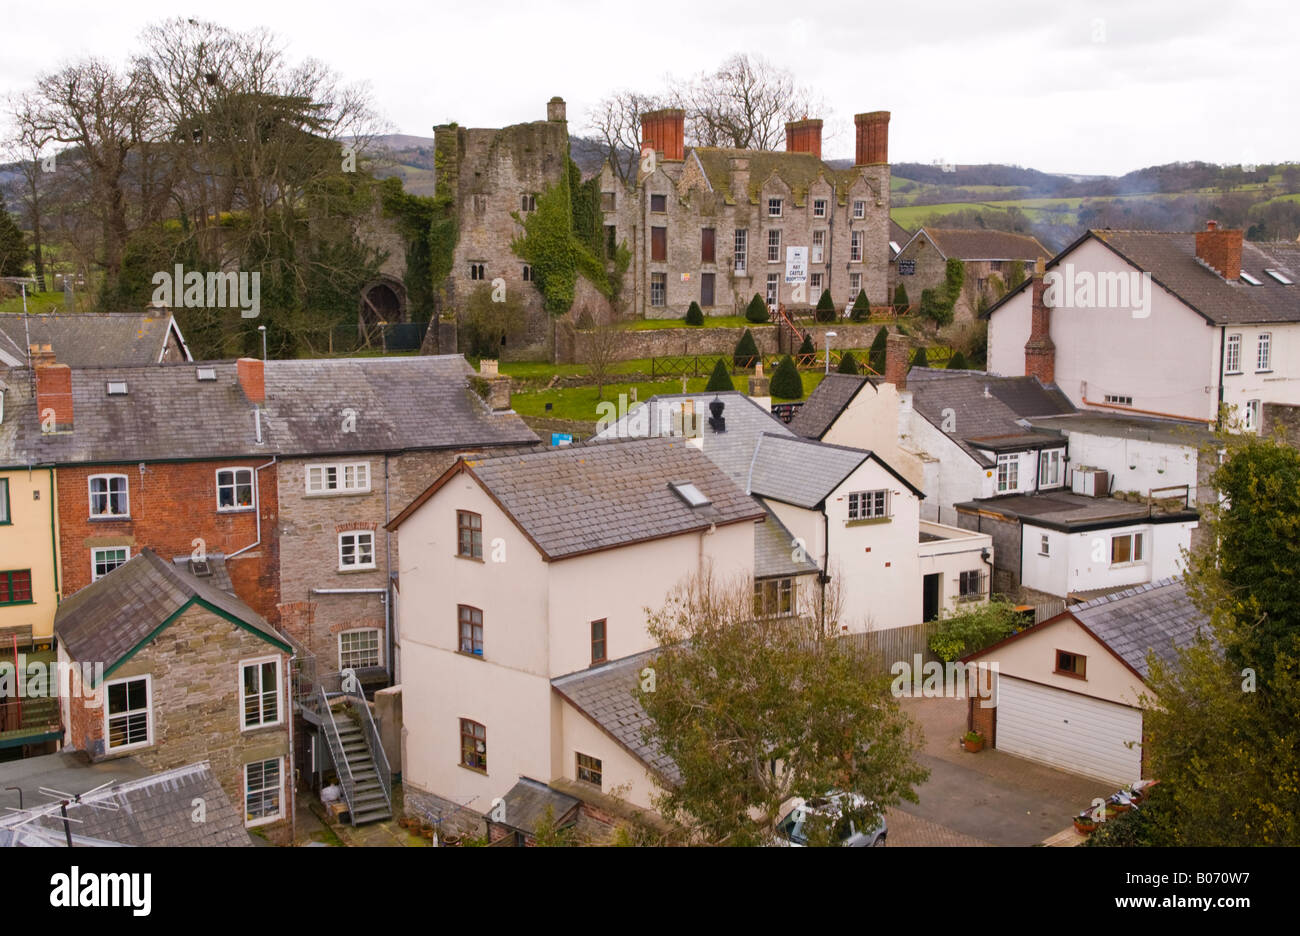 Unique view over rooftops looking toward castle of Hay on Wye Powys Wales UK on the border with England - Stock Image